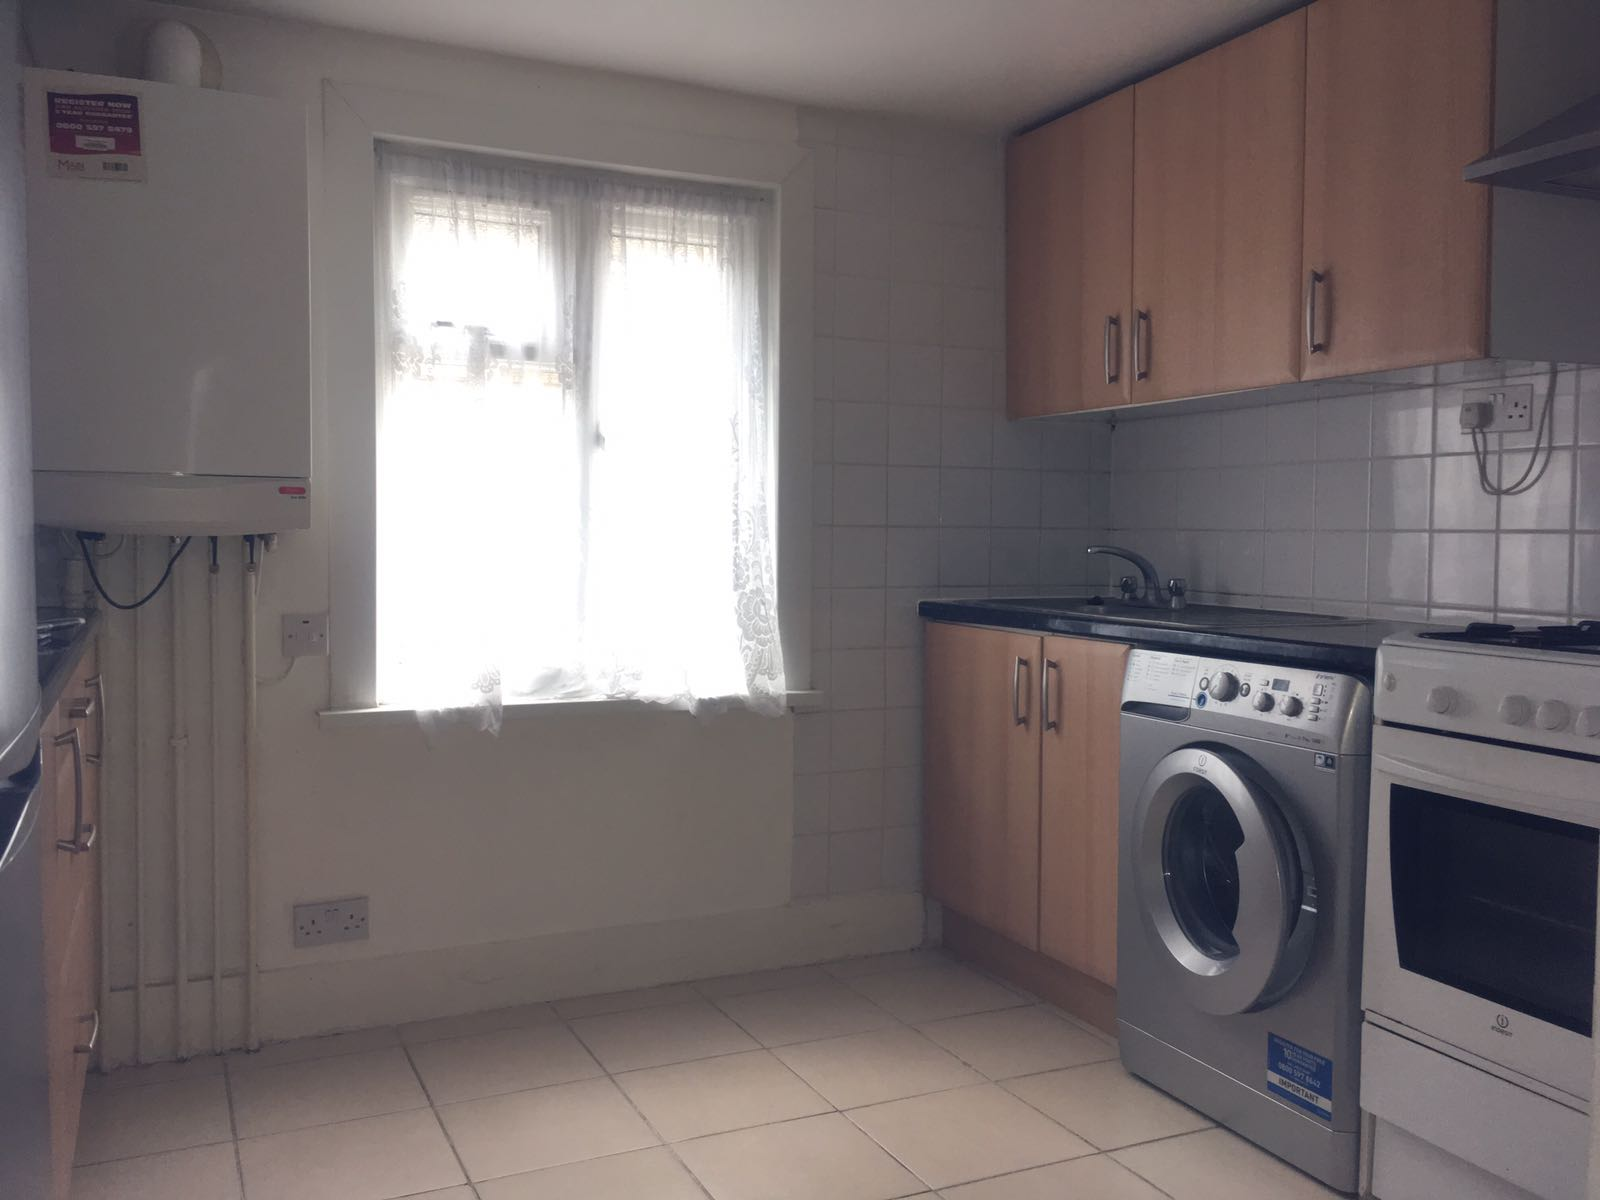 Spacious two bedroom flat can be used as three bedroom flat in Tottenham N17.